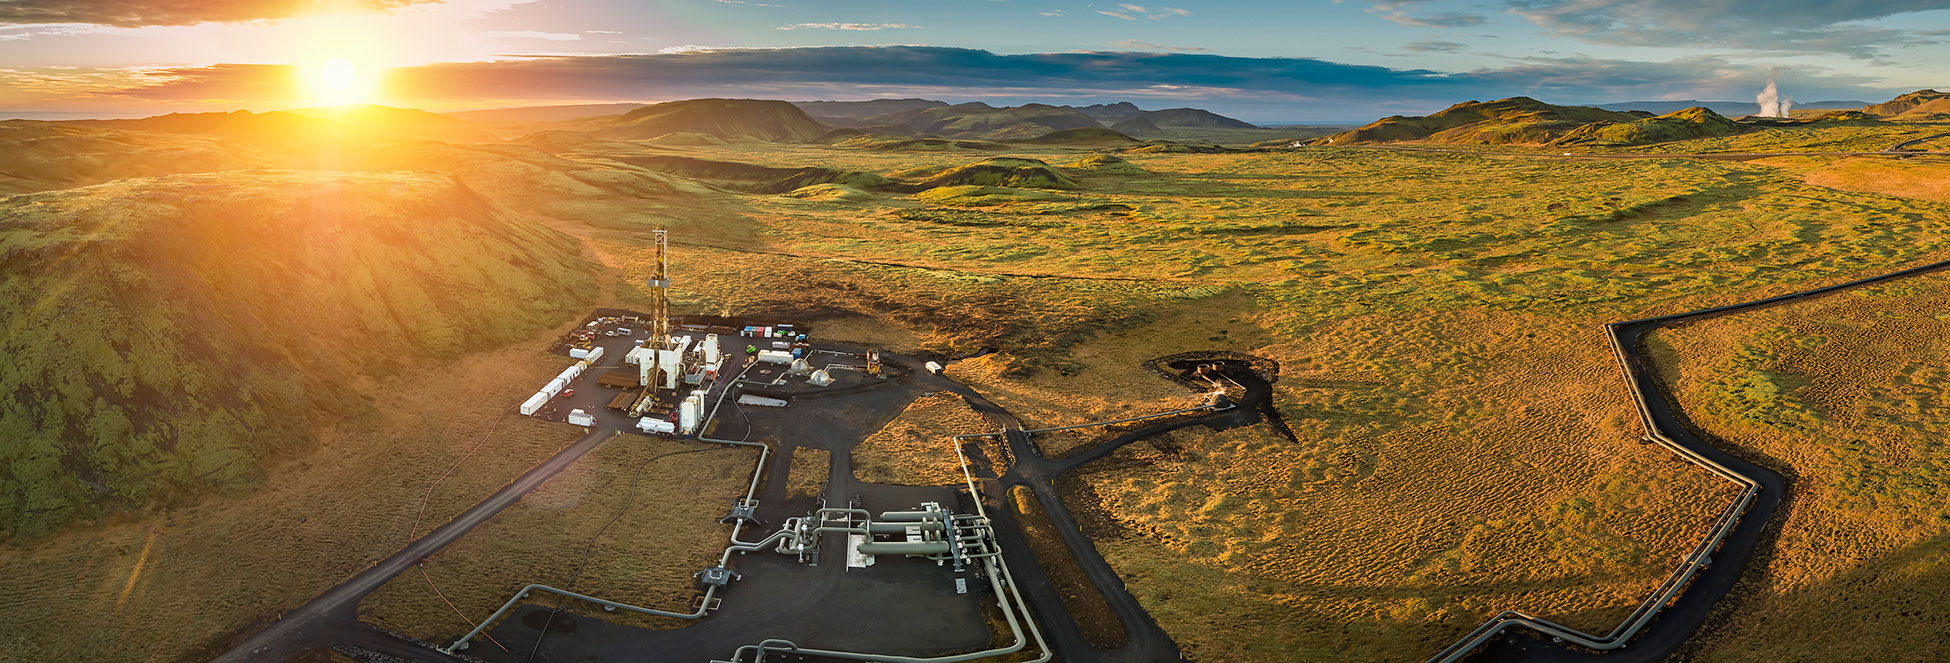 drilling-technologies-iceland-drilling